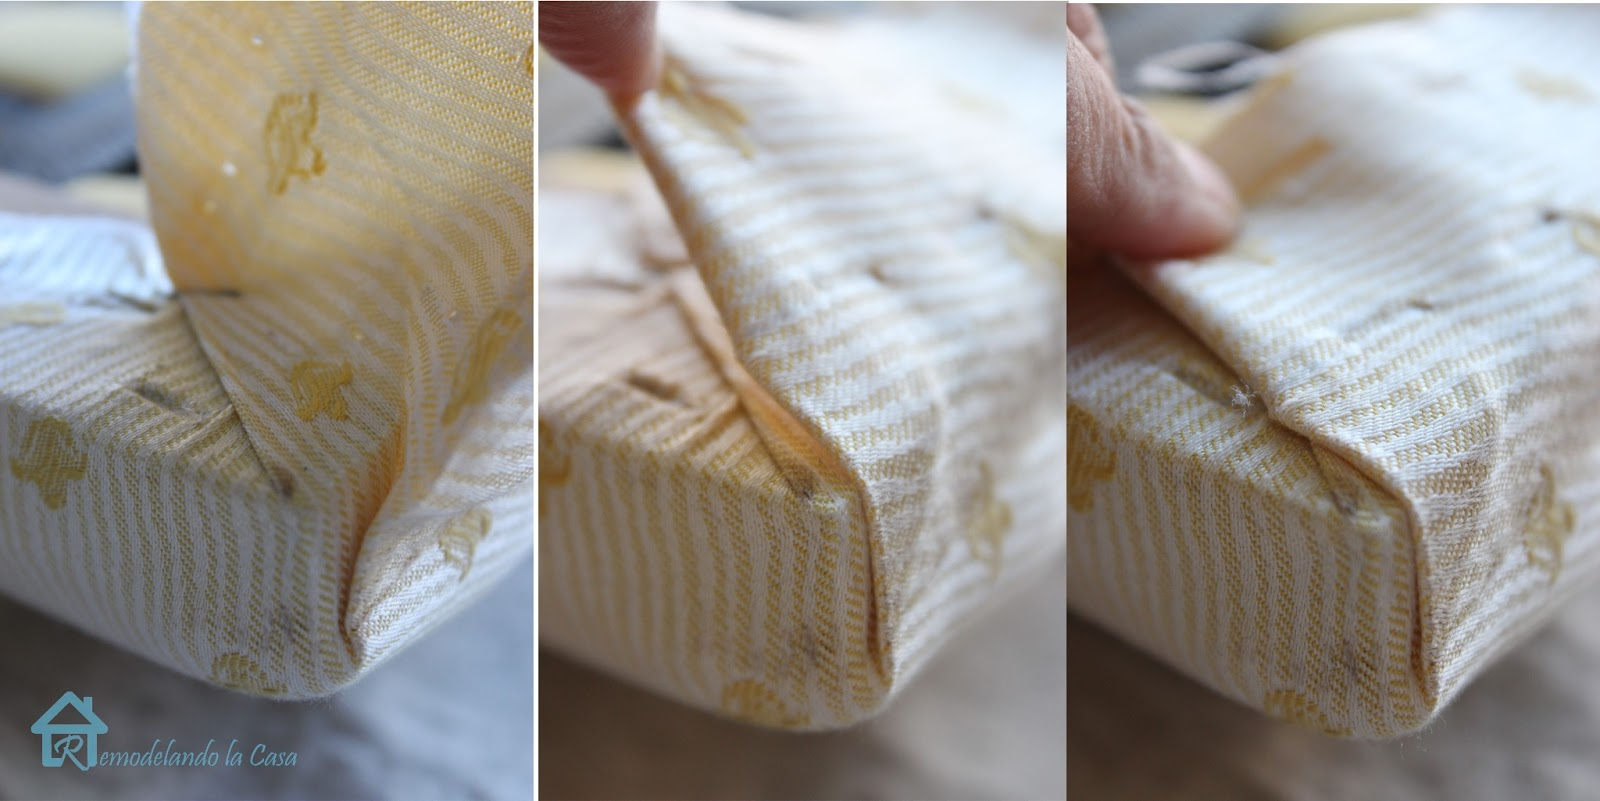 How To Make The Corners When Upholstering Cushions